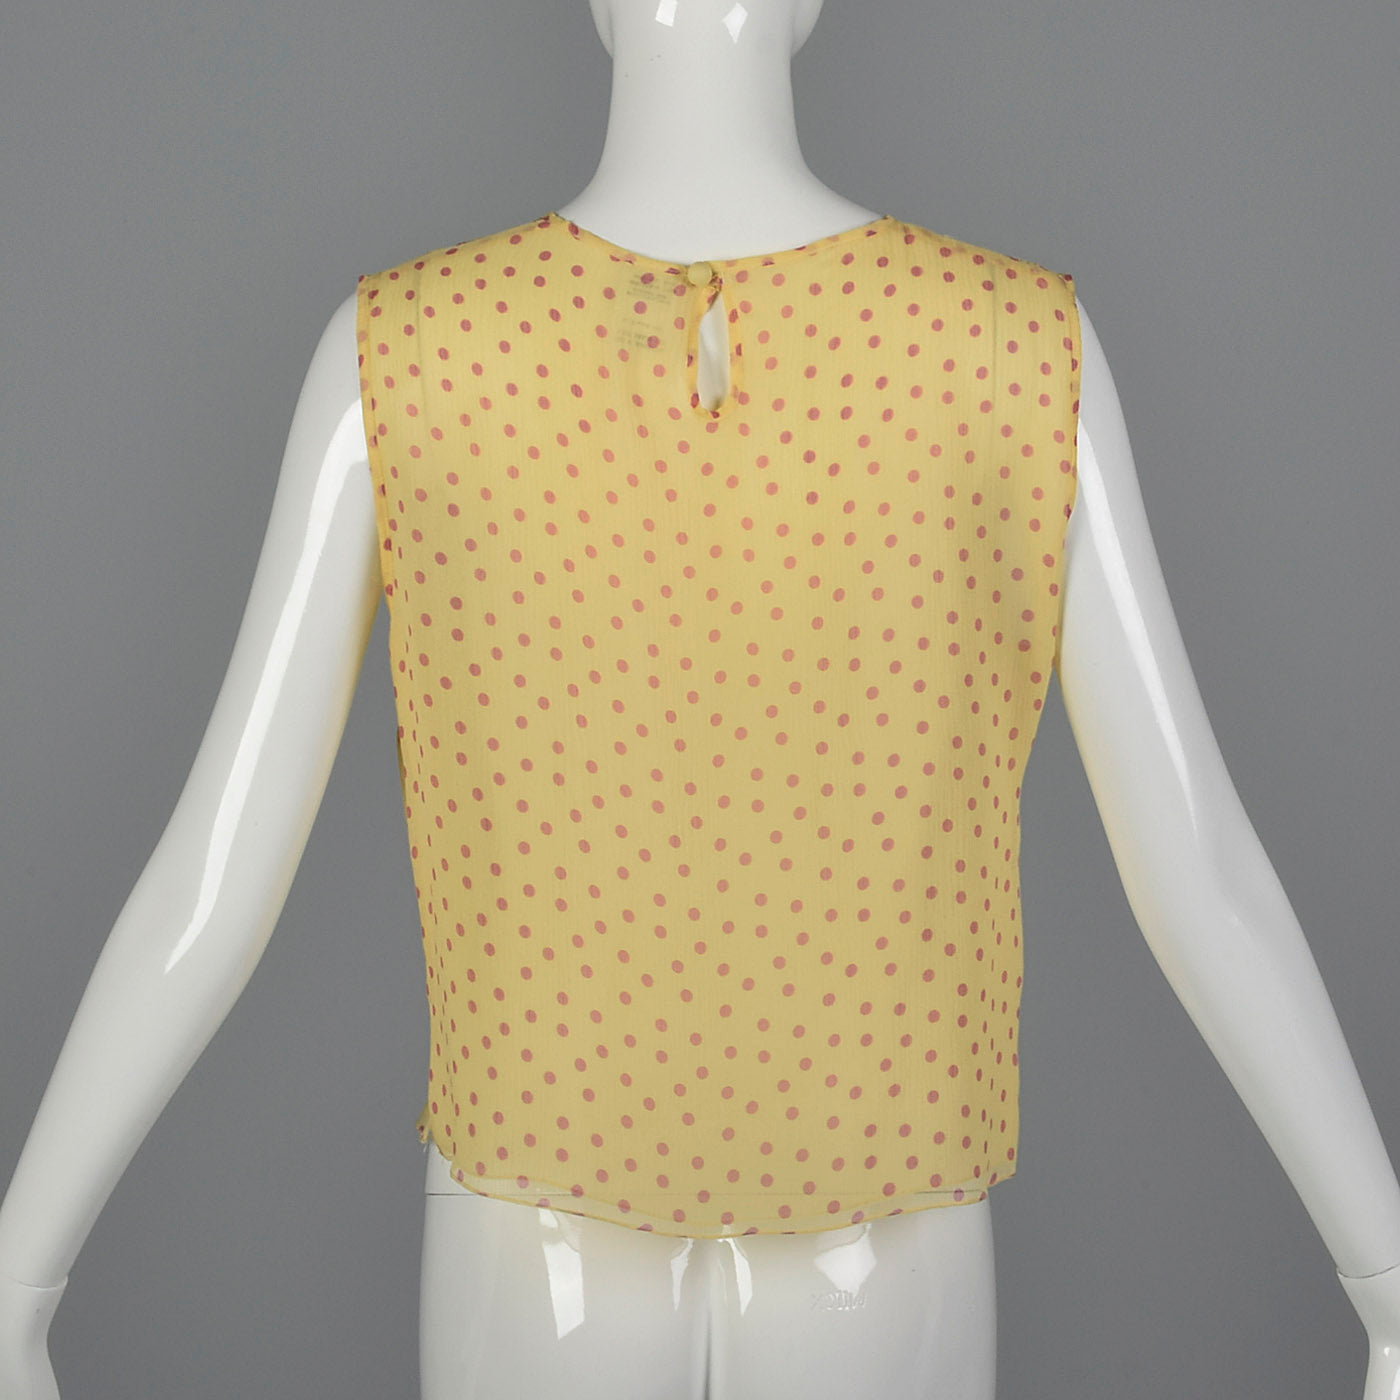 2000s Yellow Silk Blouse with Pink Polka Dots